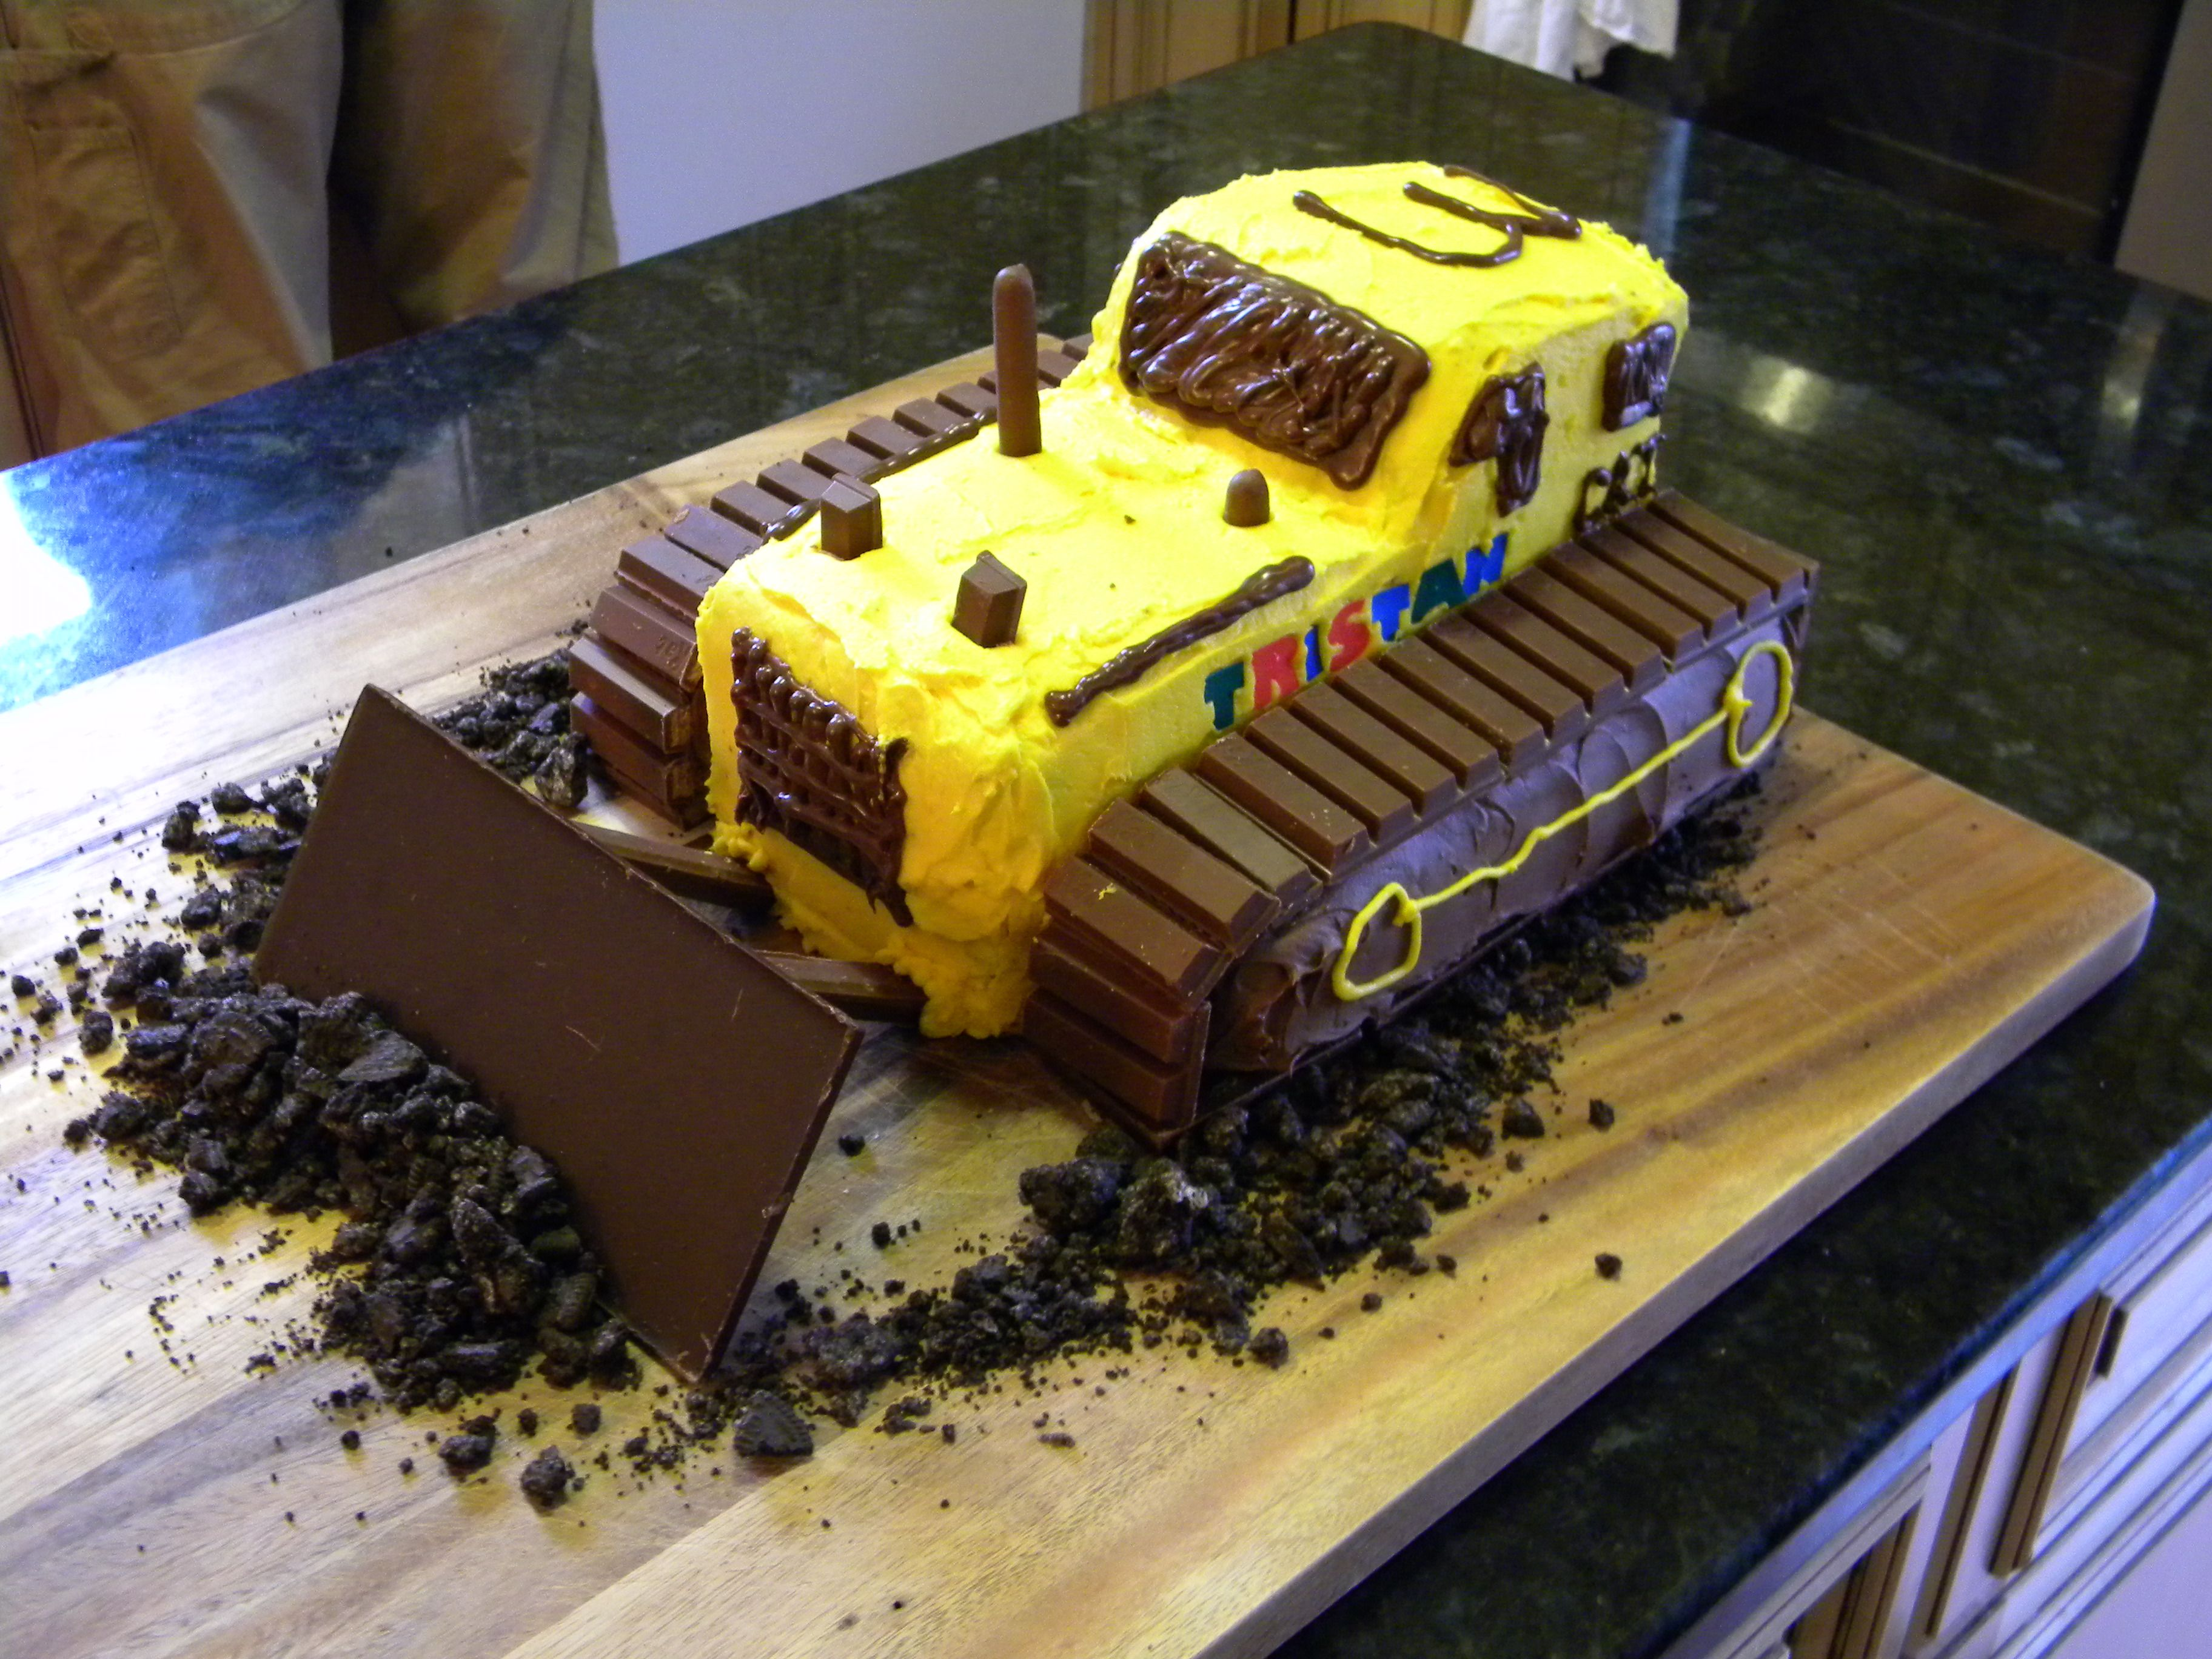 Bulldozer Birthday Cake I Made For Our Son Got The Idea From The